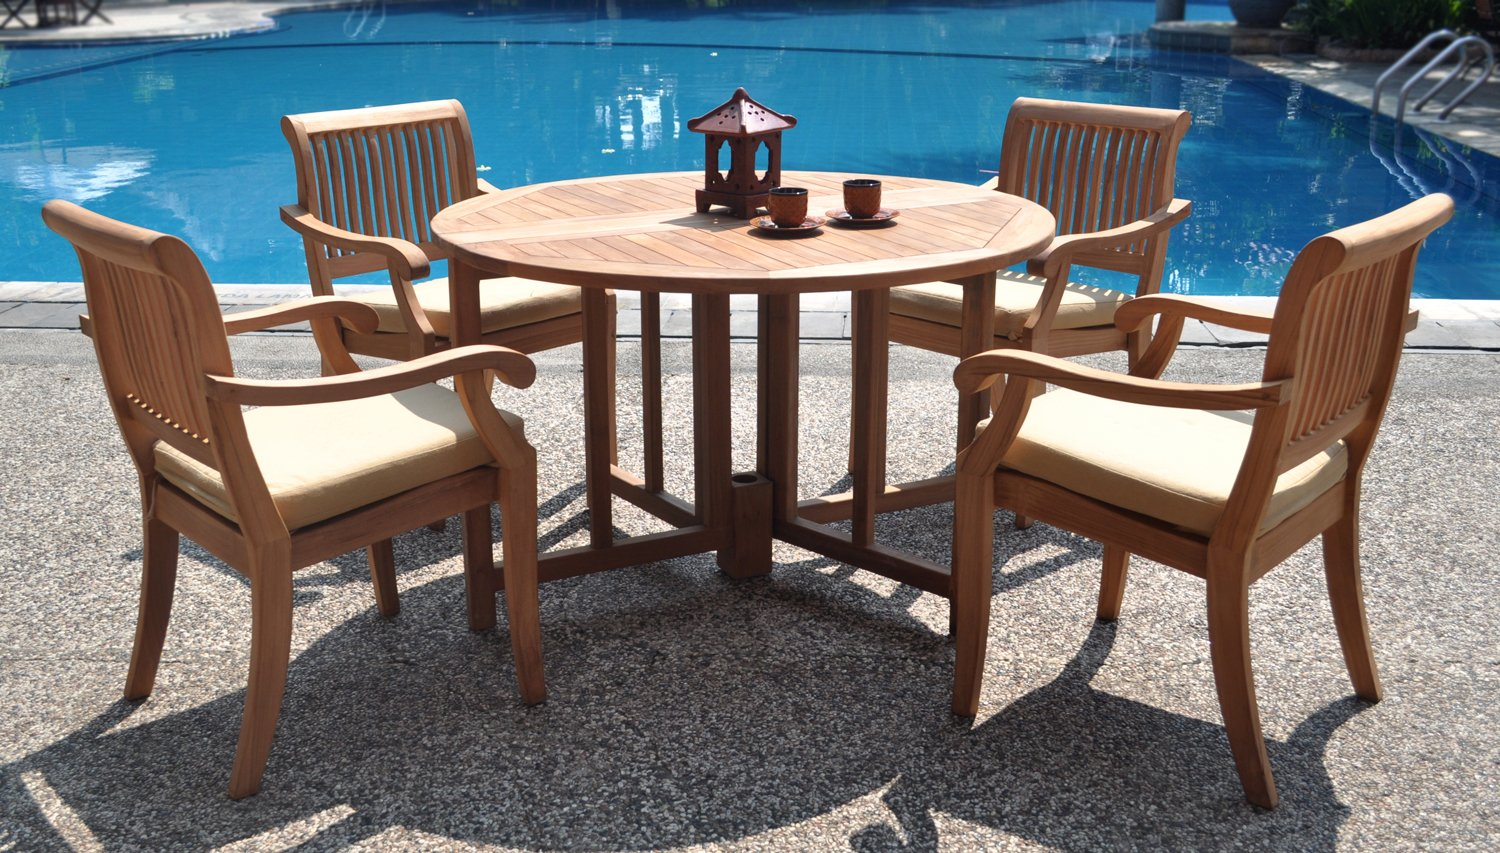 "WholesaleTeak New 5 Pc Luxurious Grade-A Teak Dining Set - 48"" Round Butterfly Table and 4 Stacking Arbor Arm Chairs #WHDSAB4 - The chairs are stackable for easy storage. Round table folds in butterfly fashion. Also has a hole for an umbrella. ADD SUNBRELLA FABRIC CUSHIONS BY SEARCHING ASIN ""B01I4CC166"" or ""Wholesaleteak Dining Cushion"" ON AMAZON, CUSTOM MADE FOR THESE STYLE CHAIRS - patio-furniture, dining-sets-patio-funiture, patio - 81rP%2BEzCYOL -"